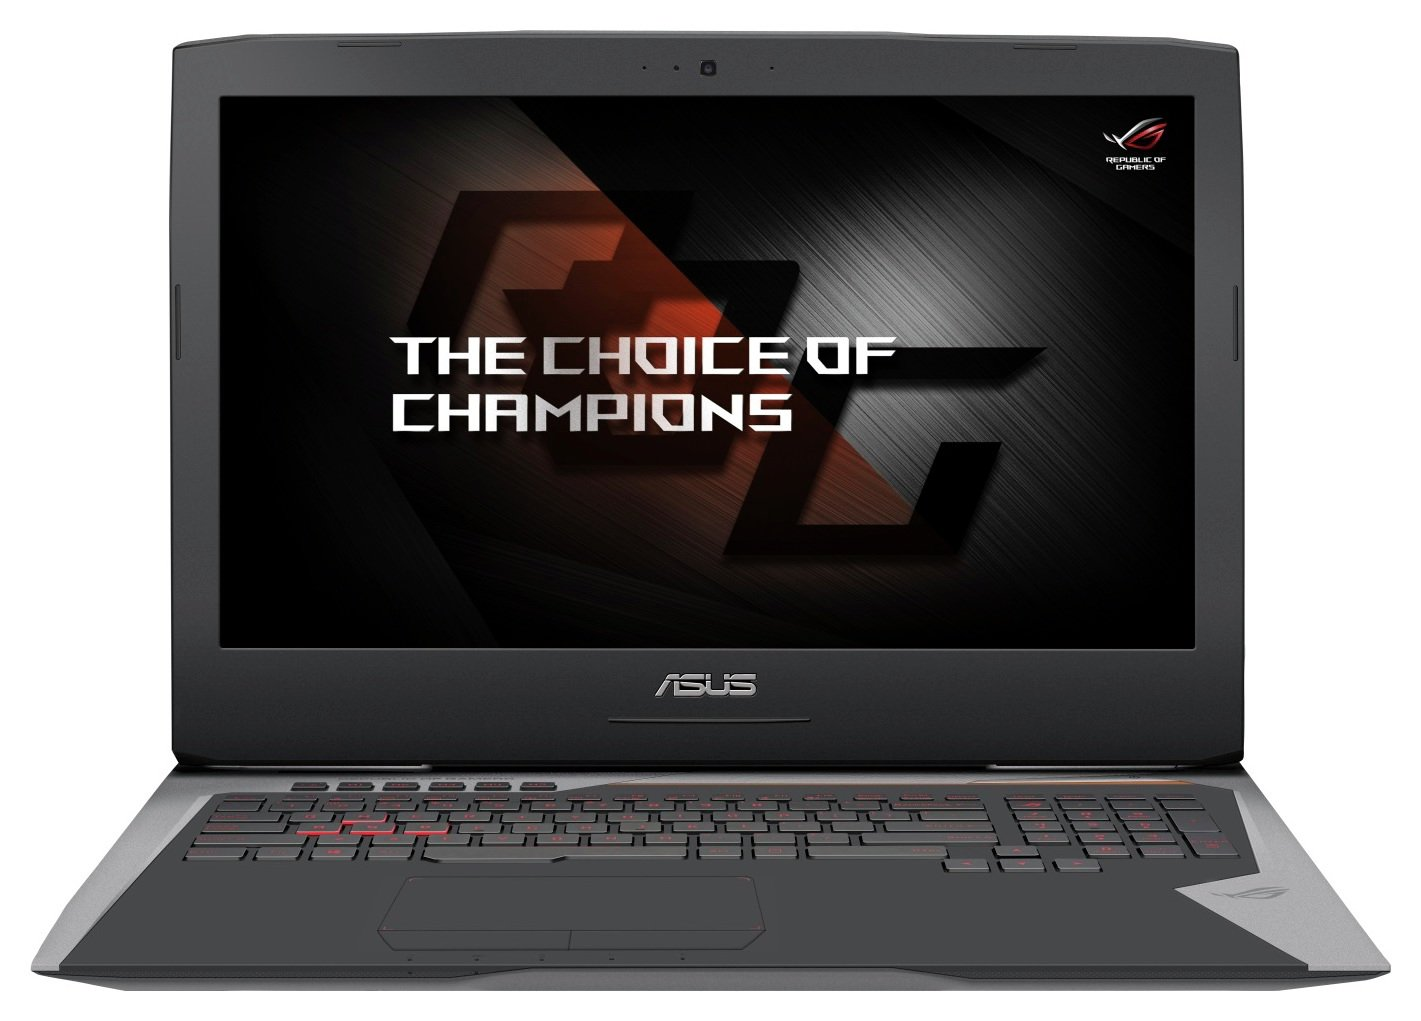 Image of Asus GL702 i7 17 In 24GB 1TB 256GB GTX 1070M Gaming Laptop